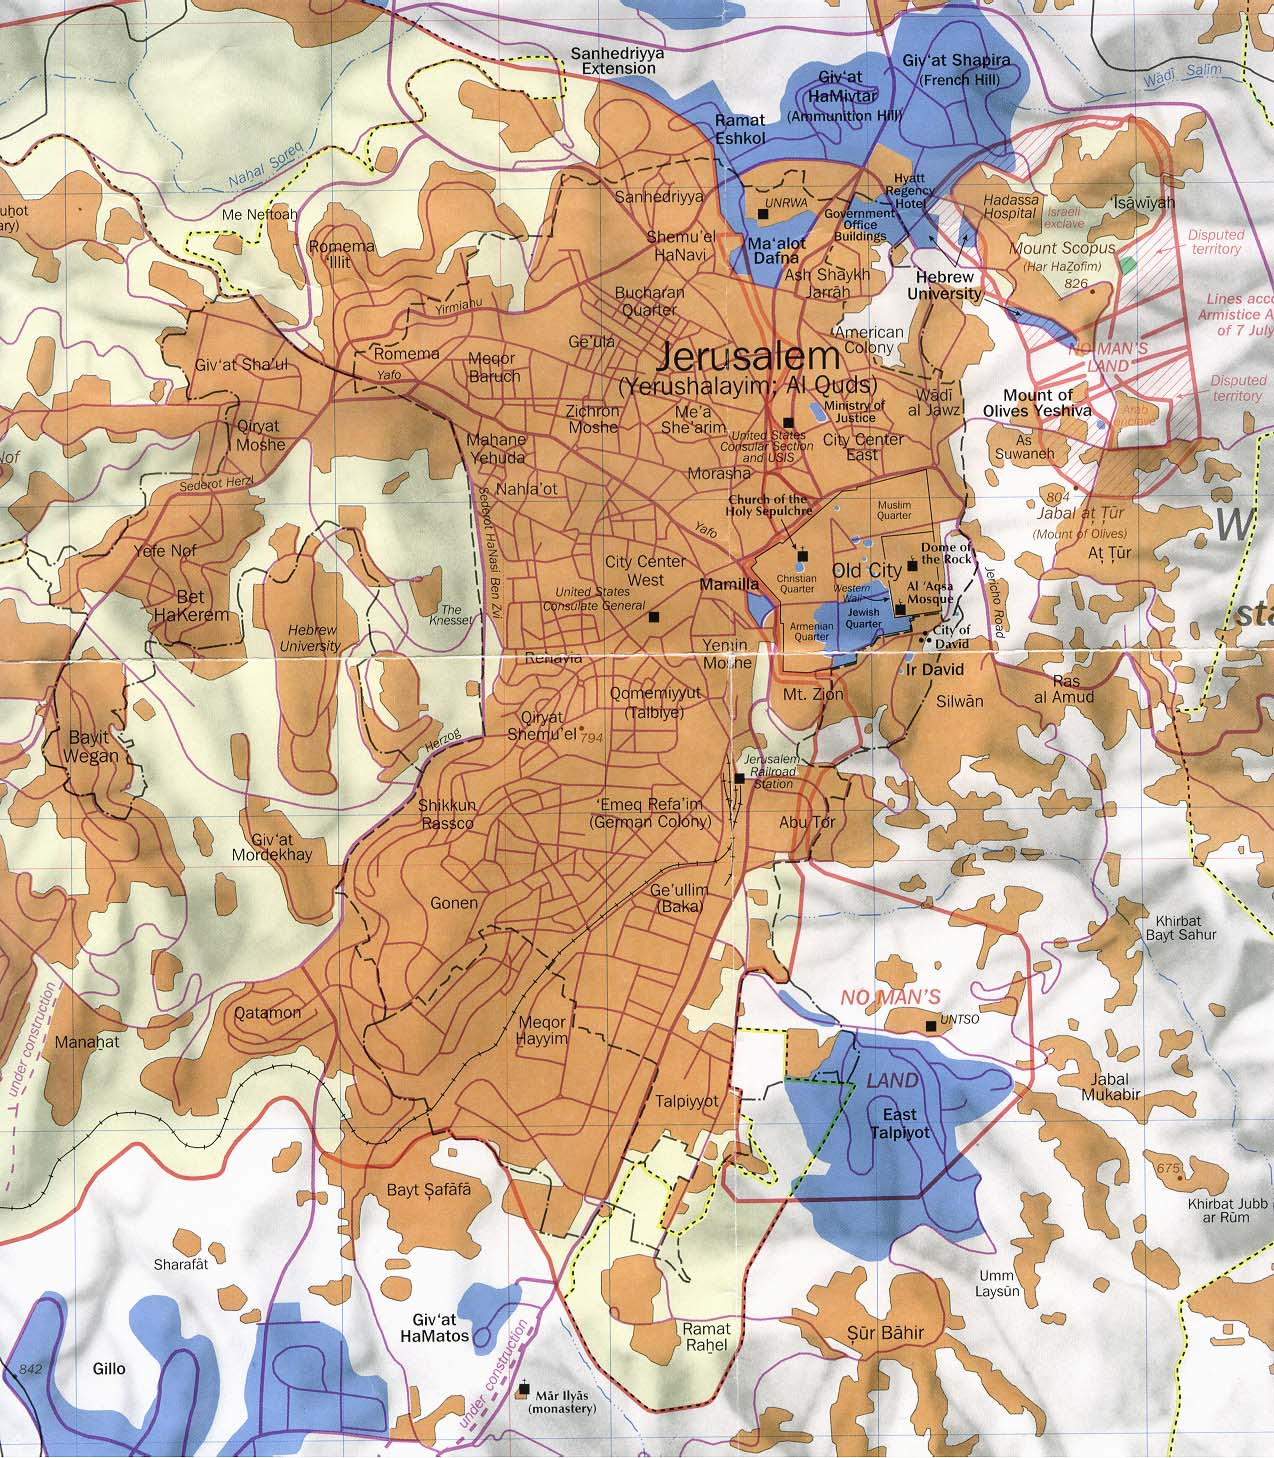 Jerusalem Center Of The World Map.Israel Maps Perry Castaneda Map Collection Ut Library Online